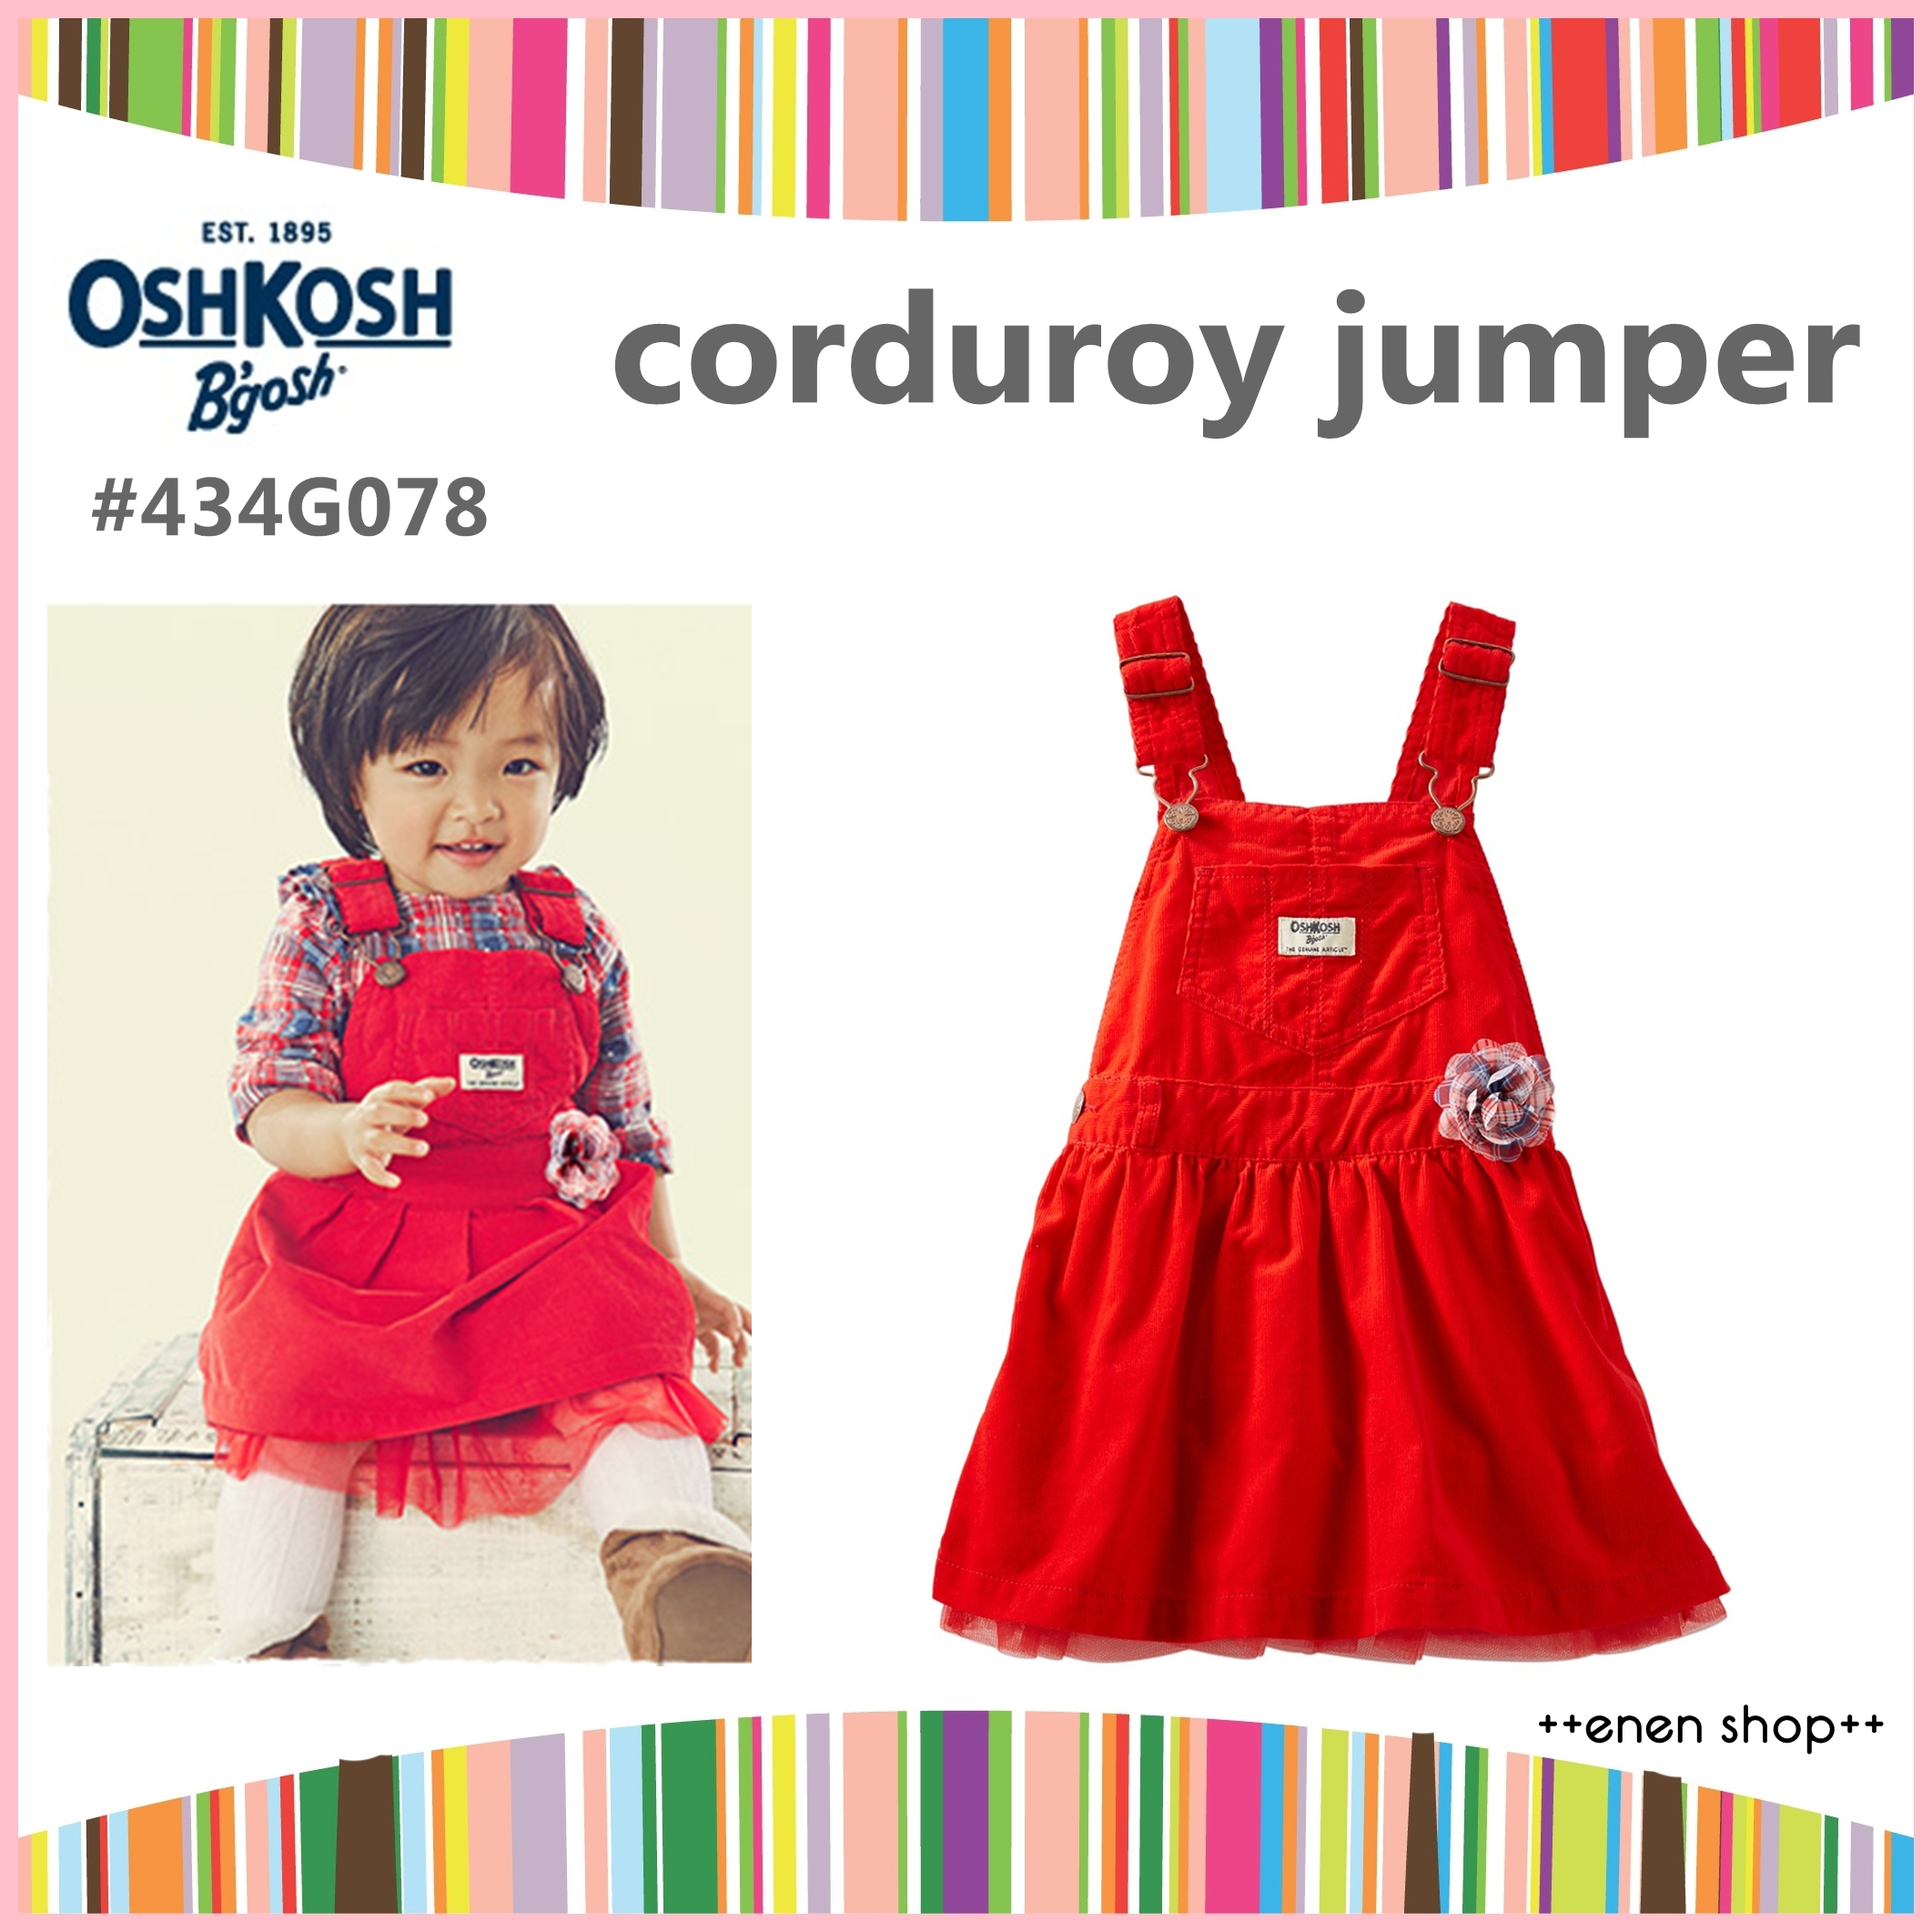 ++enen shop++ OshKosh B'gosh 燈芯絨花朵吊帶裙 ∥ 12M/18M/24M/2T/3T/4T